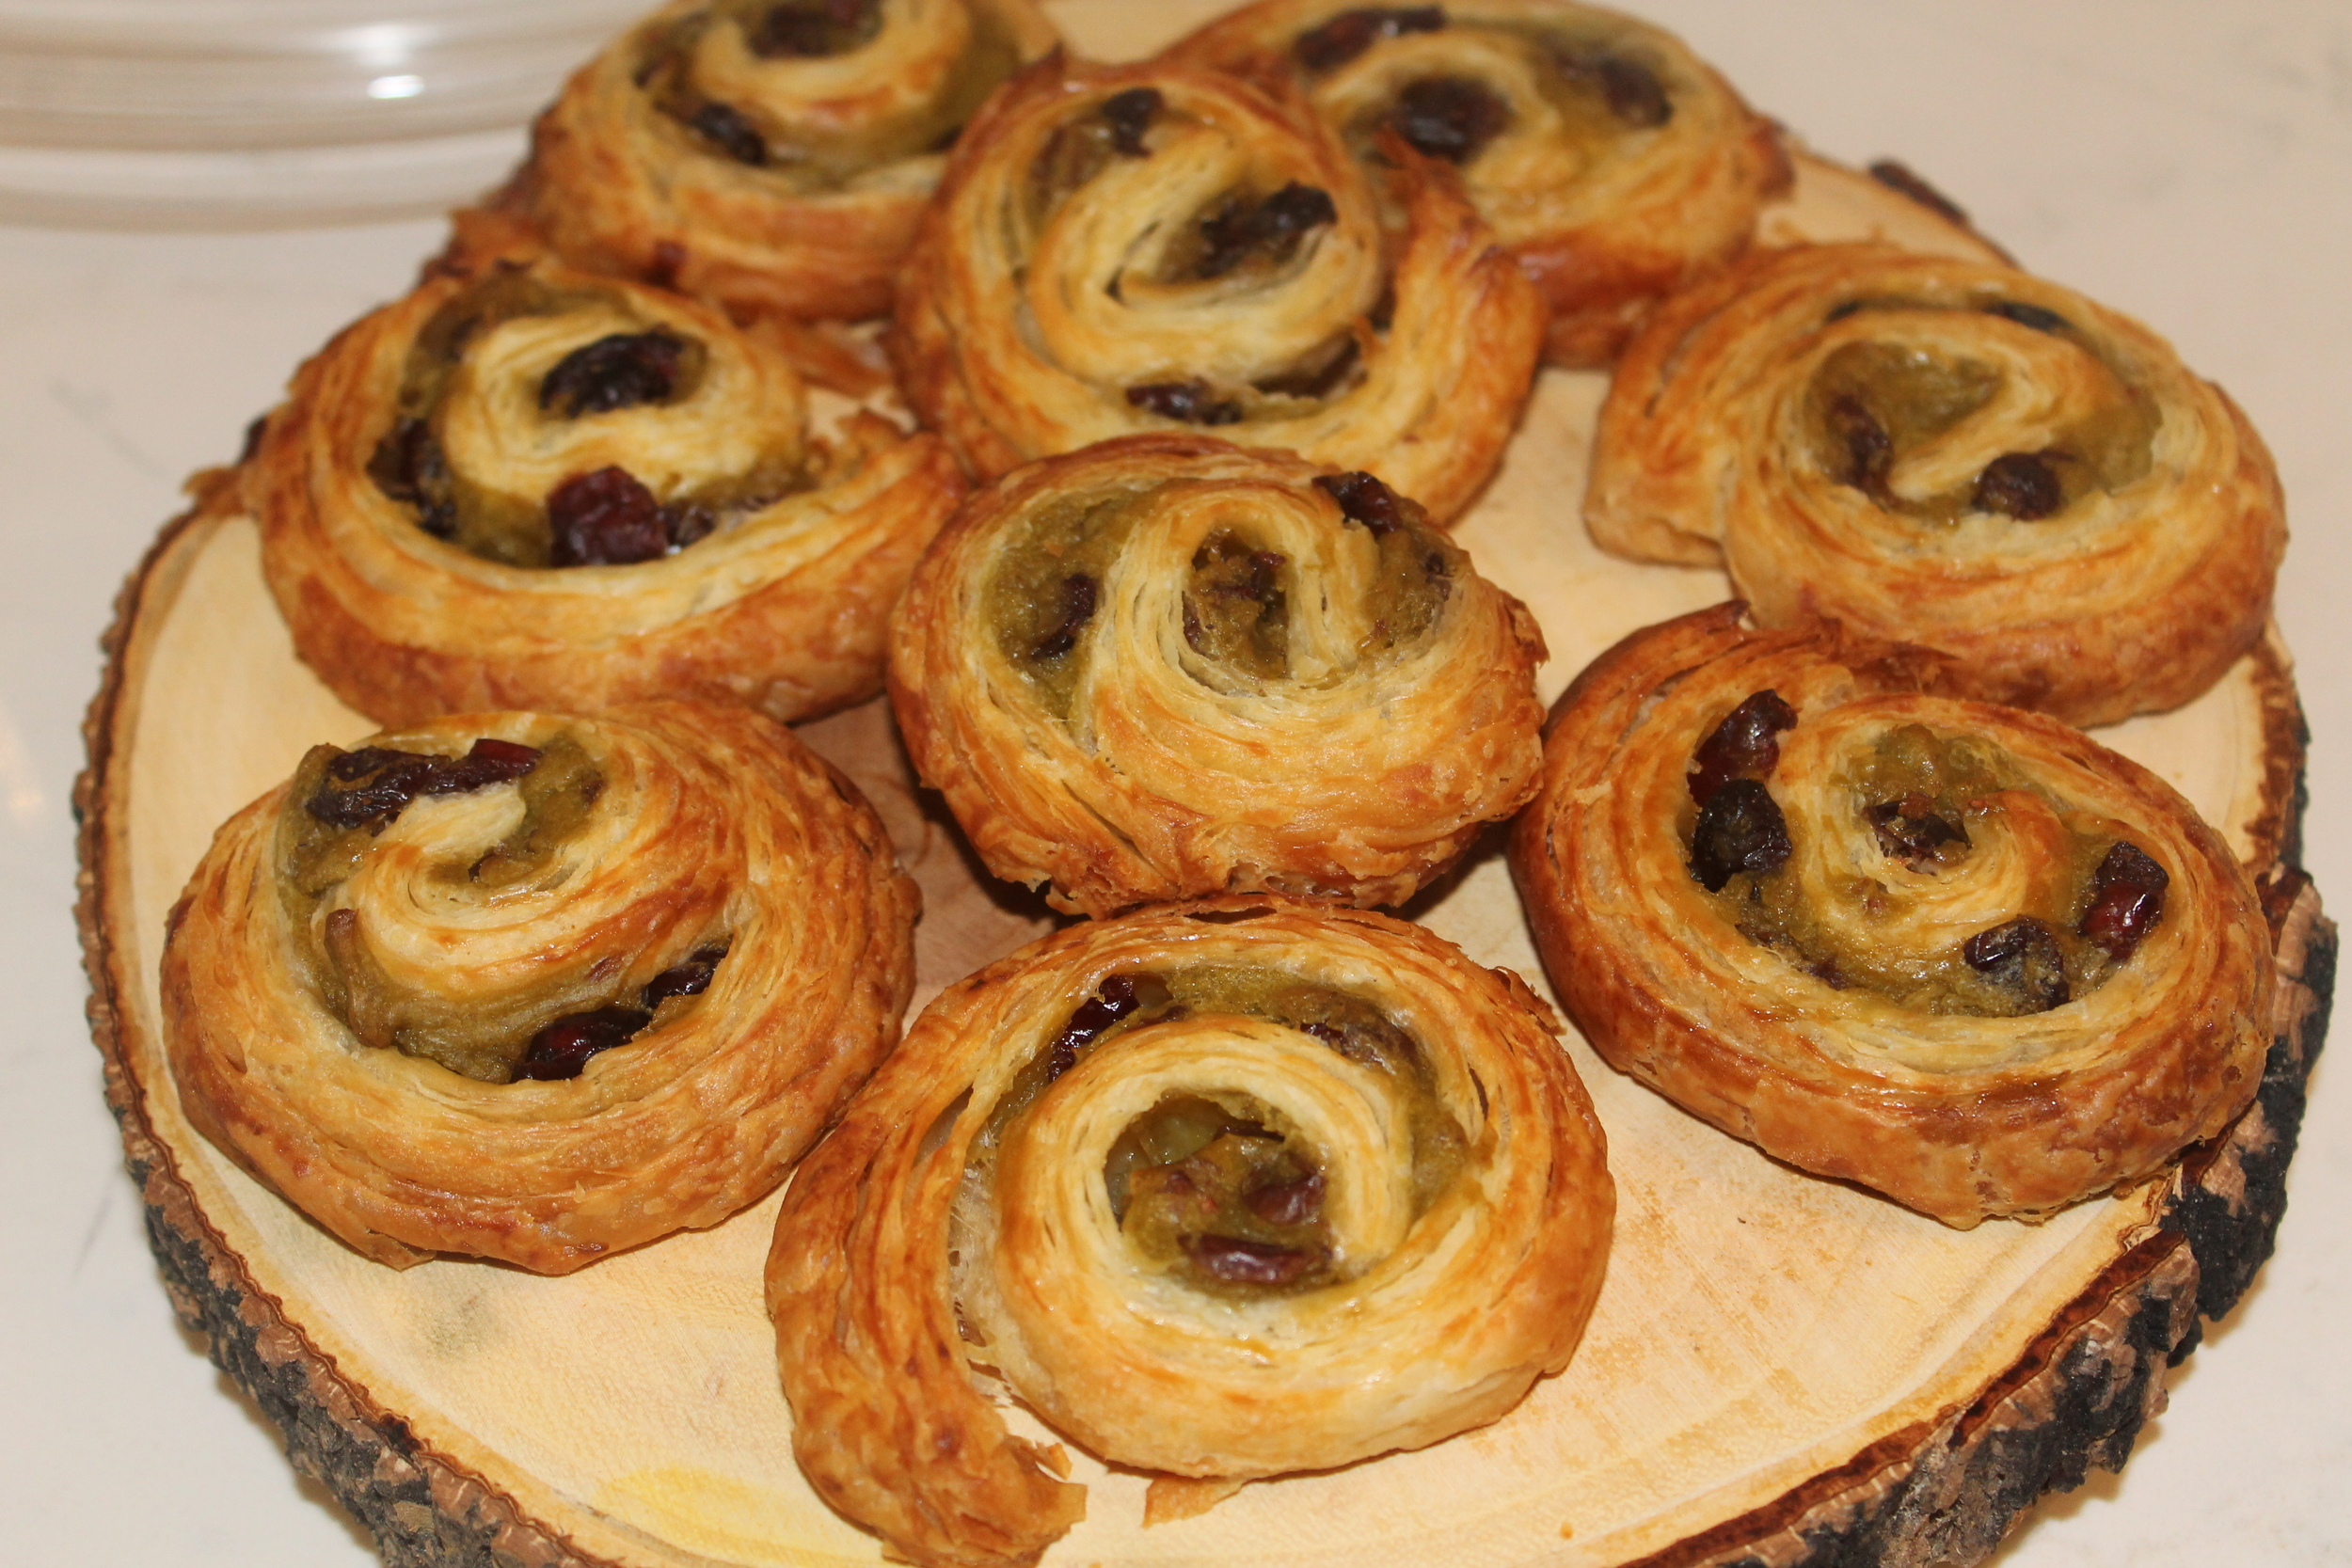 Raisin Croissants by Franck. Image property of The Entertaining House.